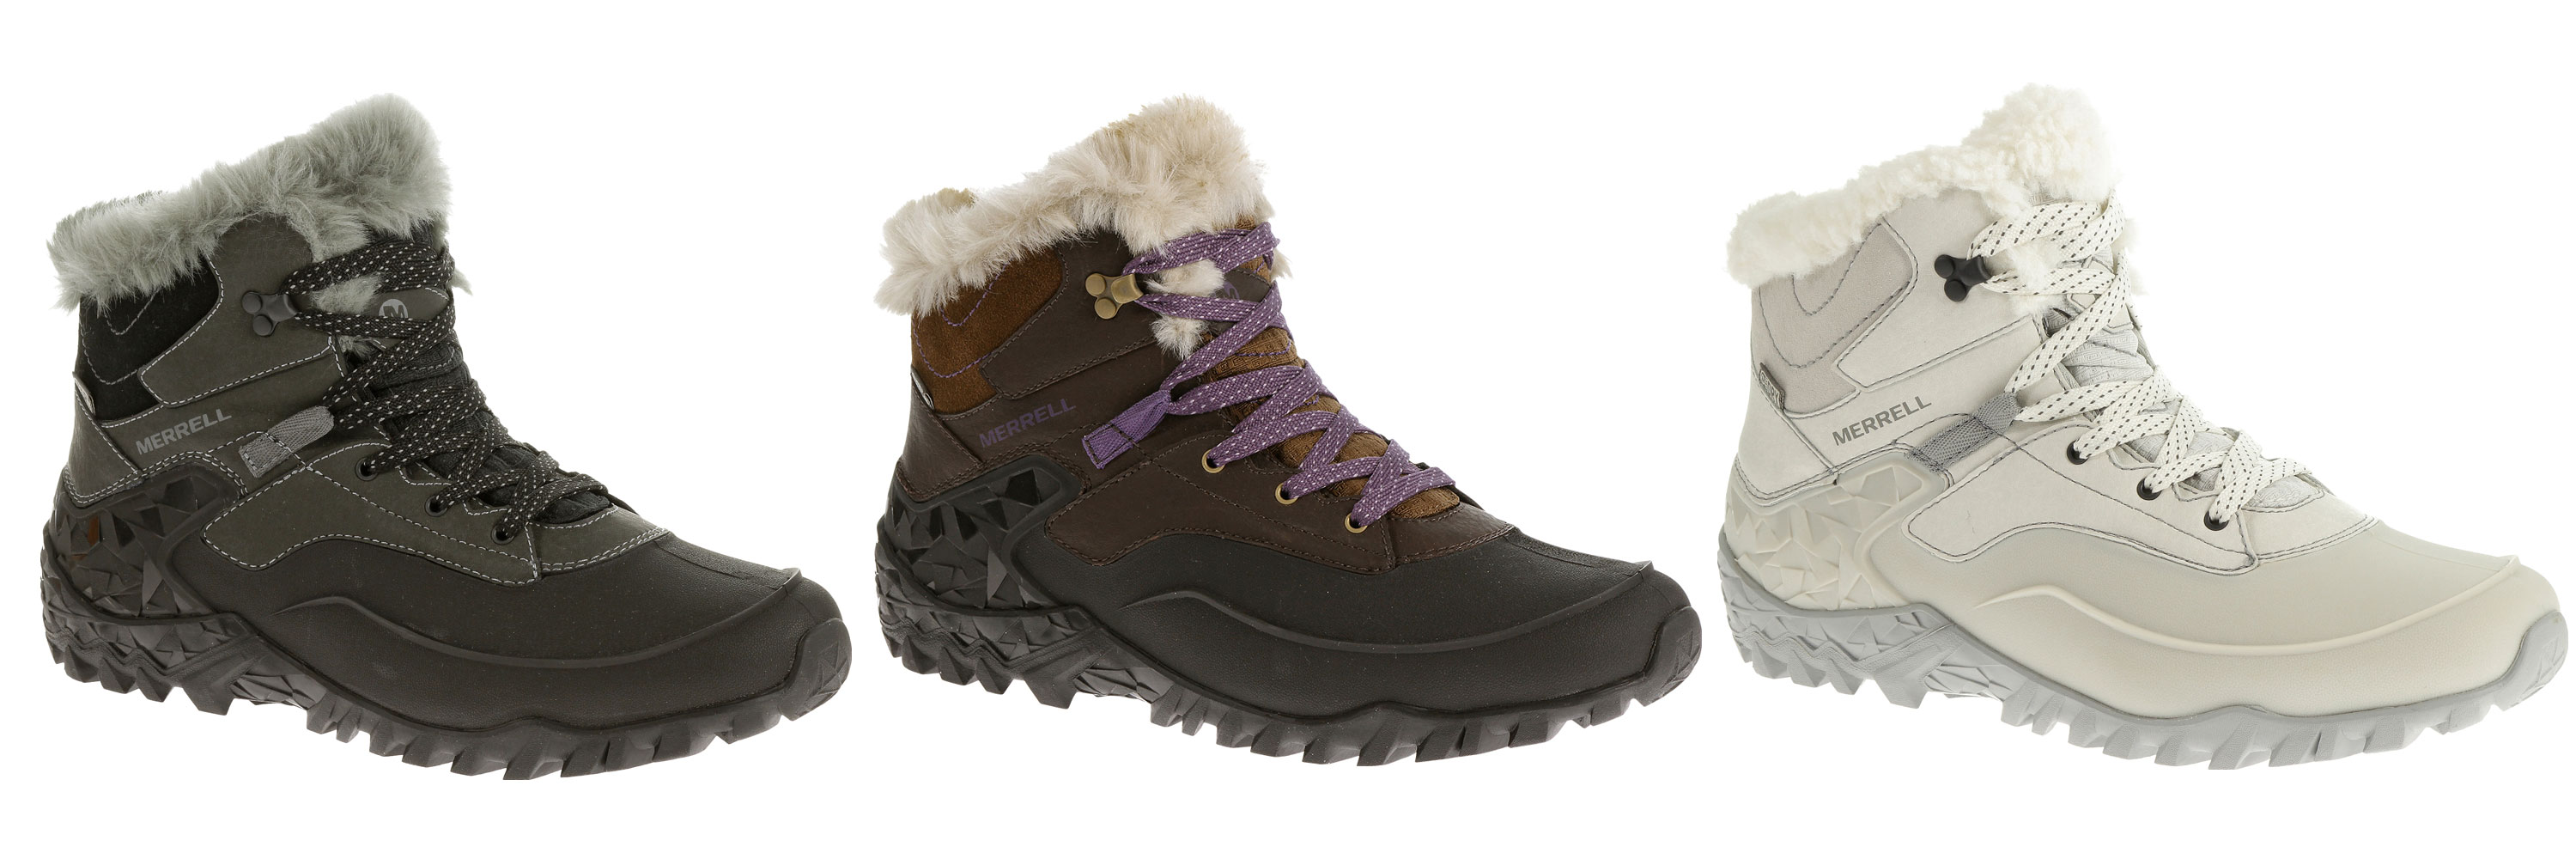 Merrell's Fraxion And Flurocein Shoes Fit For Winter Hikes 6